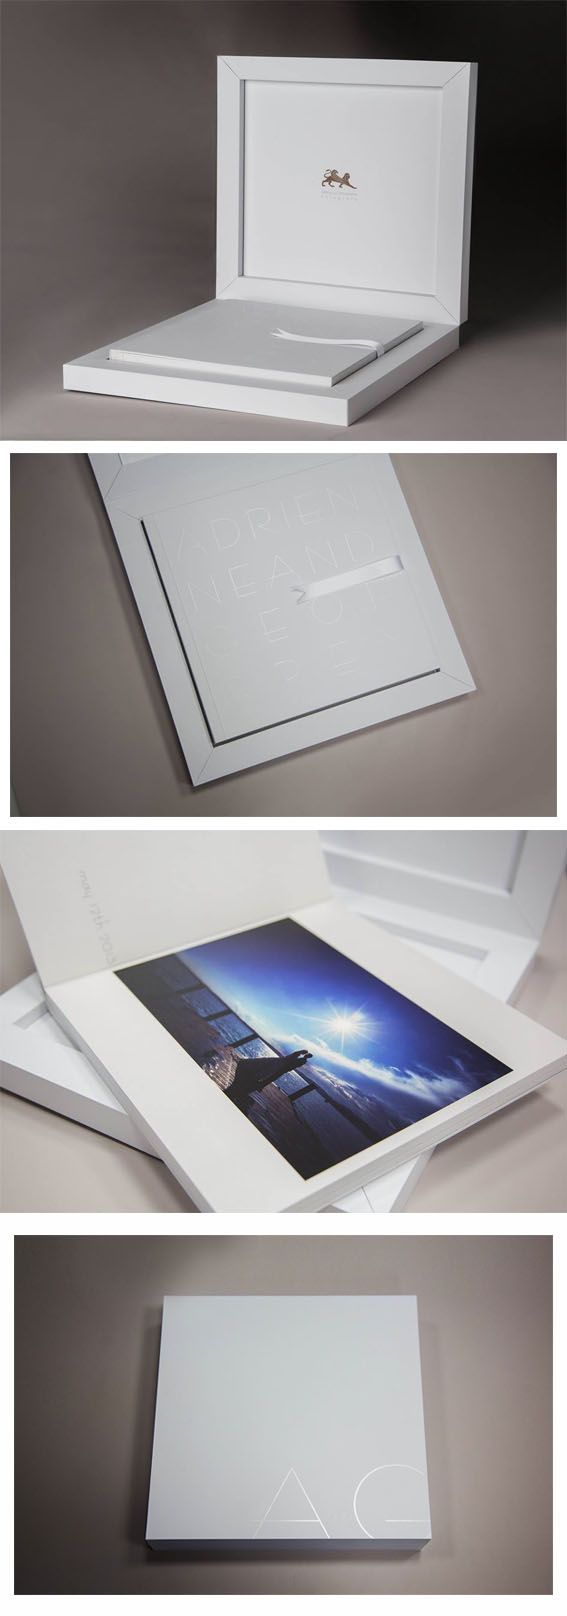 This is a unique interpretation of the Young Book, based on the purity of the white, where the extremely accurate design enhances it and turn it into something completely new. Seen in person, it is a really precious item, which has the ability of predisposing in the best way possible those about to look at the photographic service. Congratulations to the author, Glauco Comoretto.#graphistudio #madeinitaly